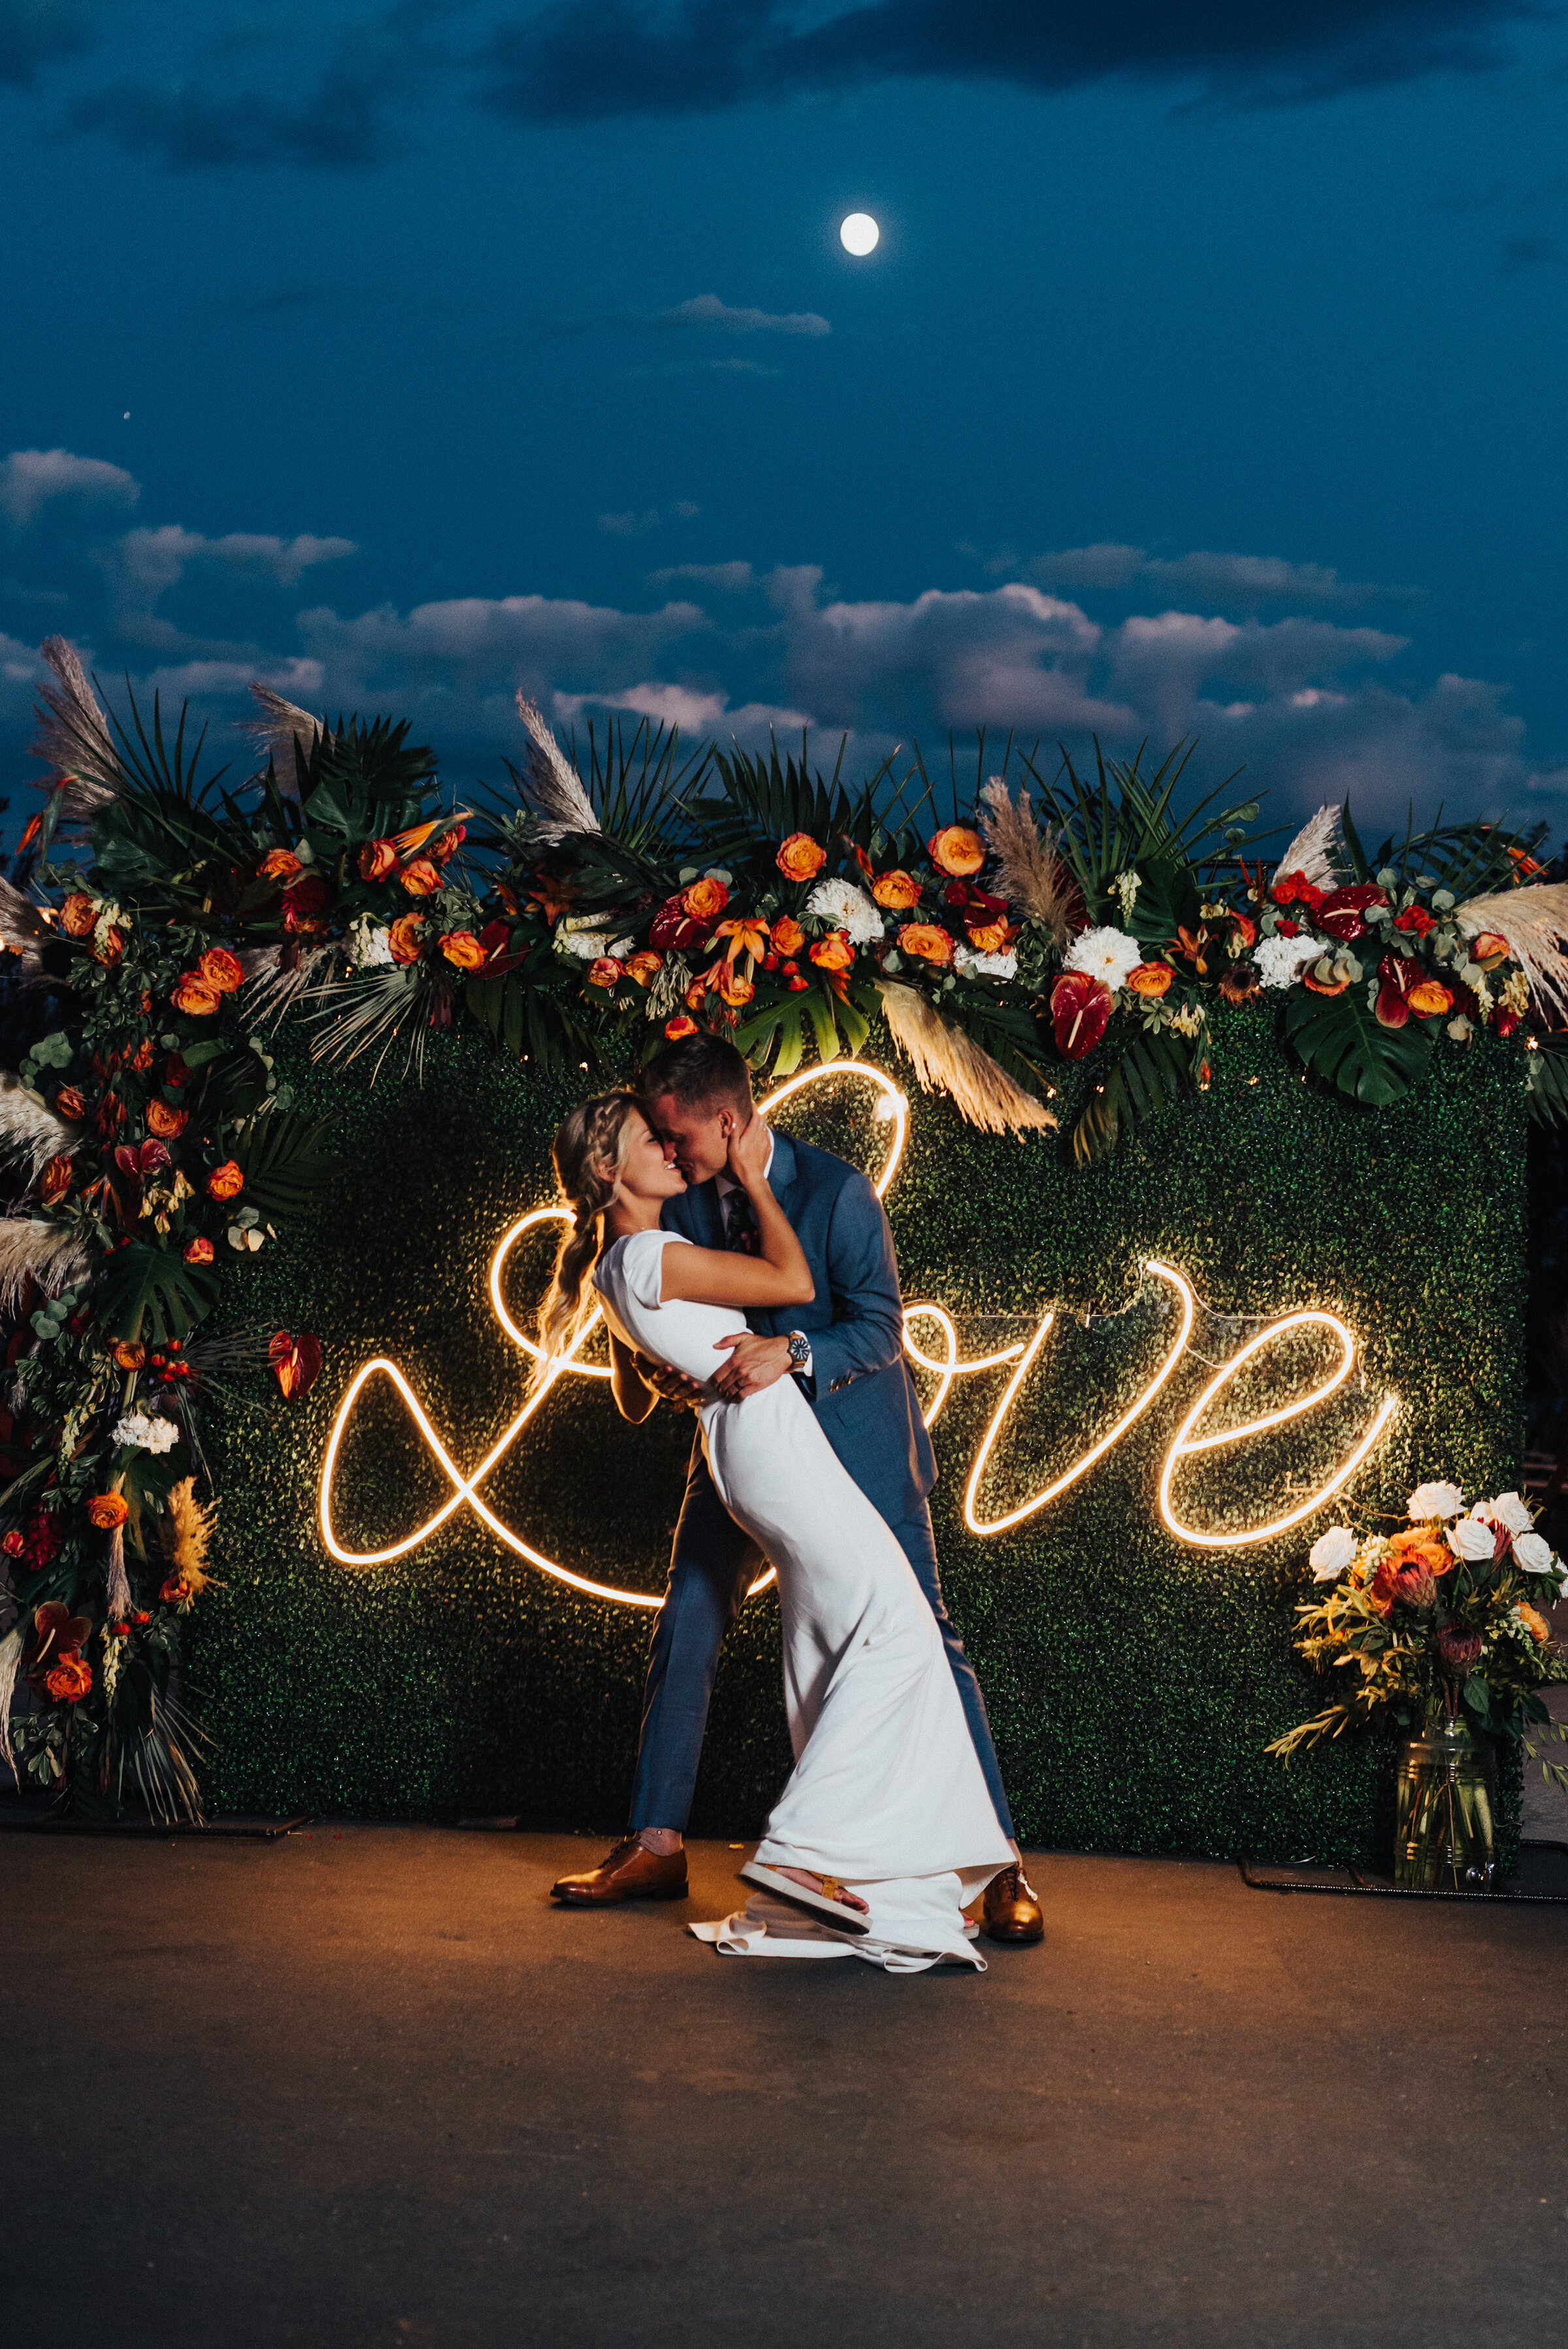 Gorgeous couple in front of neon sign and floral backdrop at this fun-loving backyard wedding reception in Park City. Kristi Alyse Photography Logan Utah photographer Park City wedding photographer Drive-Thru wedding COVID wedding neon signs socially distant wedding bride and groom #kristialysephotography #weddingphotographer #utahweddings #parkcity #utahbrides #drivethruwedding #covidwedding #LoganUtahphotographer #utahweddingphotographer